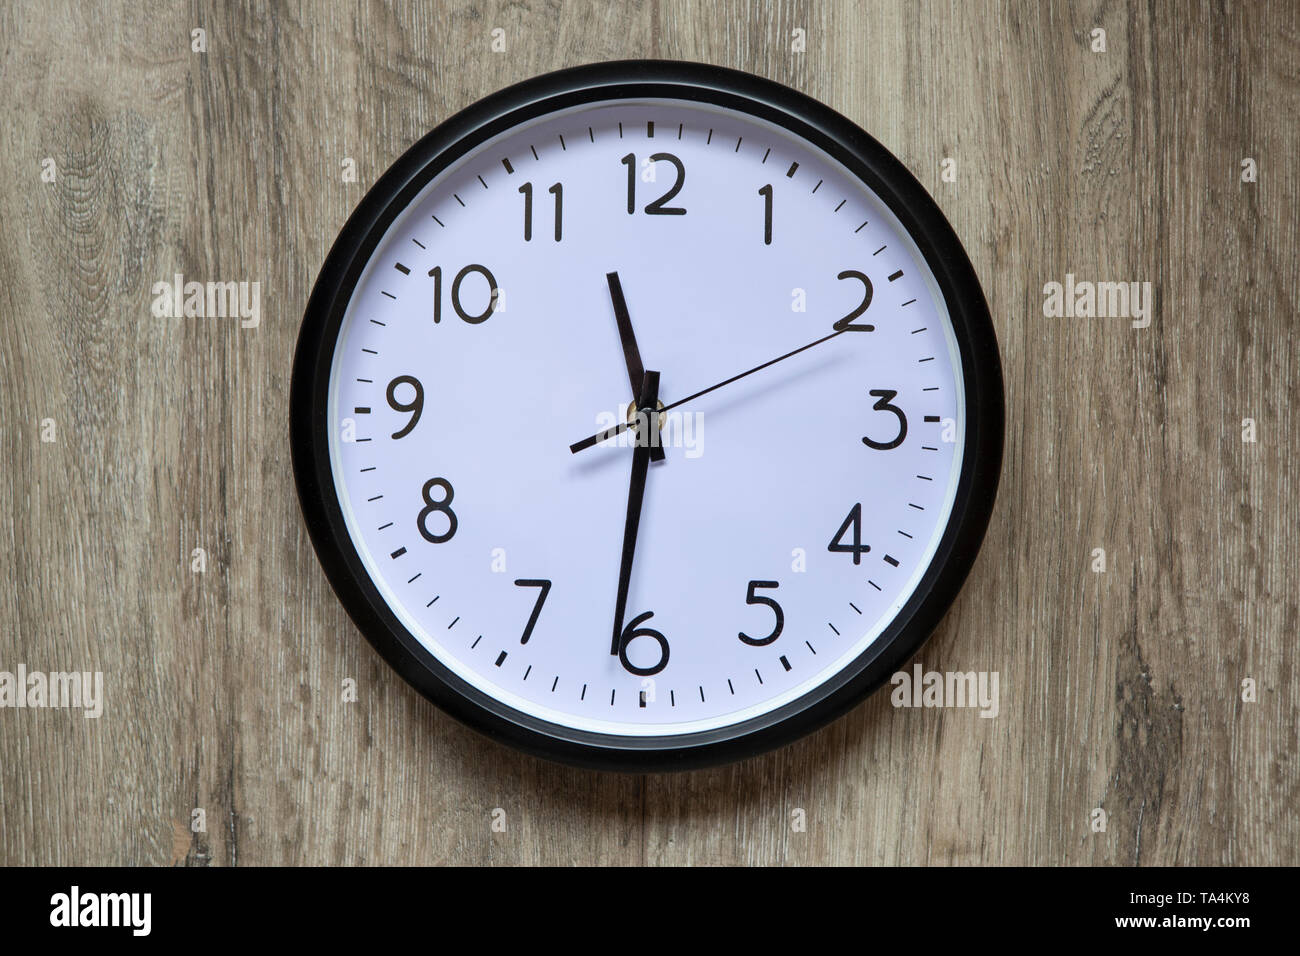 Blank clock face with hour, minute and second hands Stock Photo